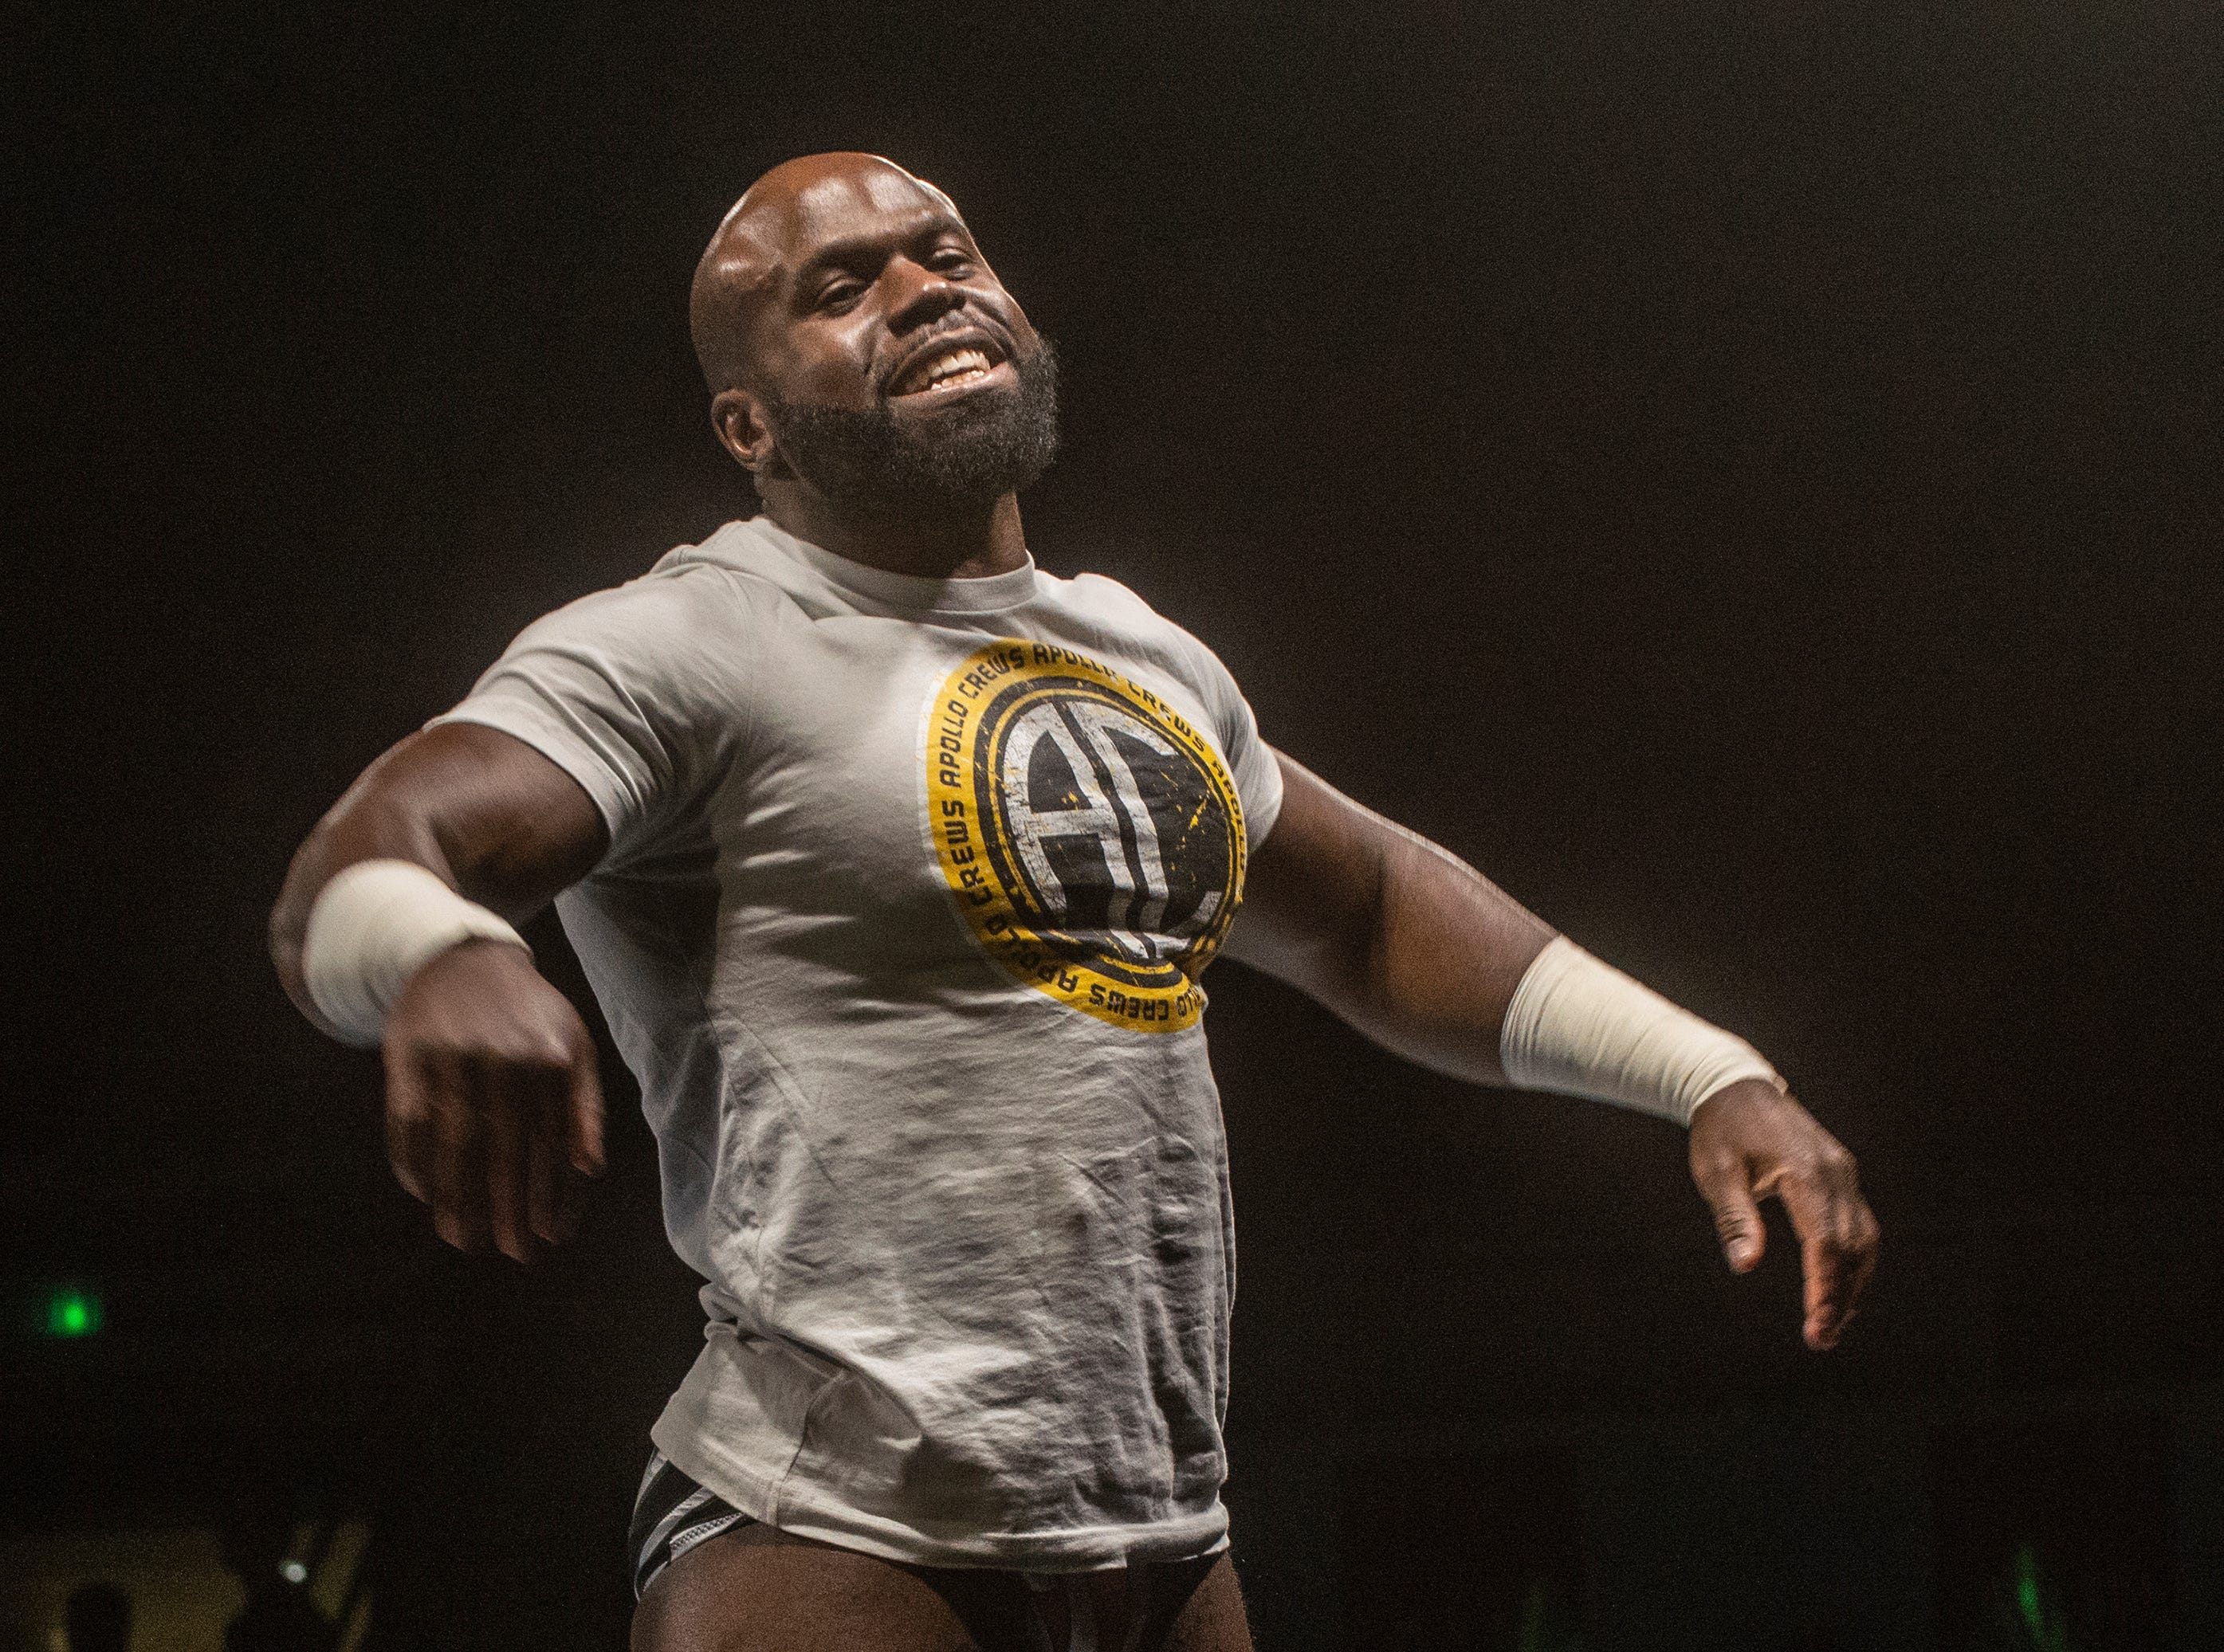 Apollo Crews greets the crowd. WWE Live Road to Wrestlemania came to Garrett Coliseum in Montgomery on Sunday, Feb. 24, 2019.